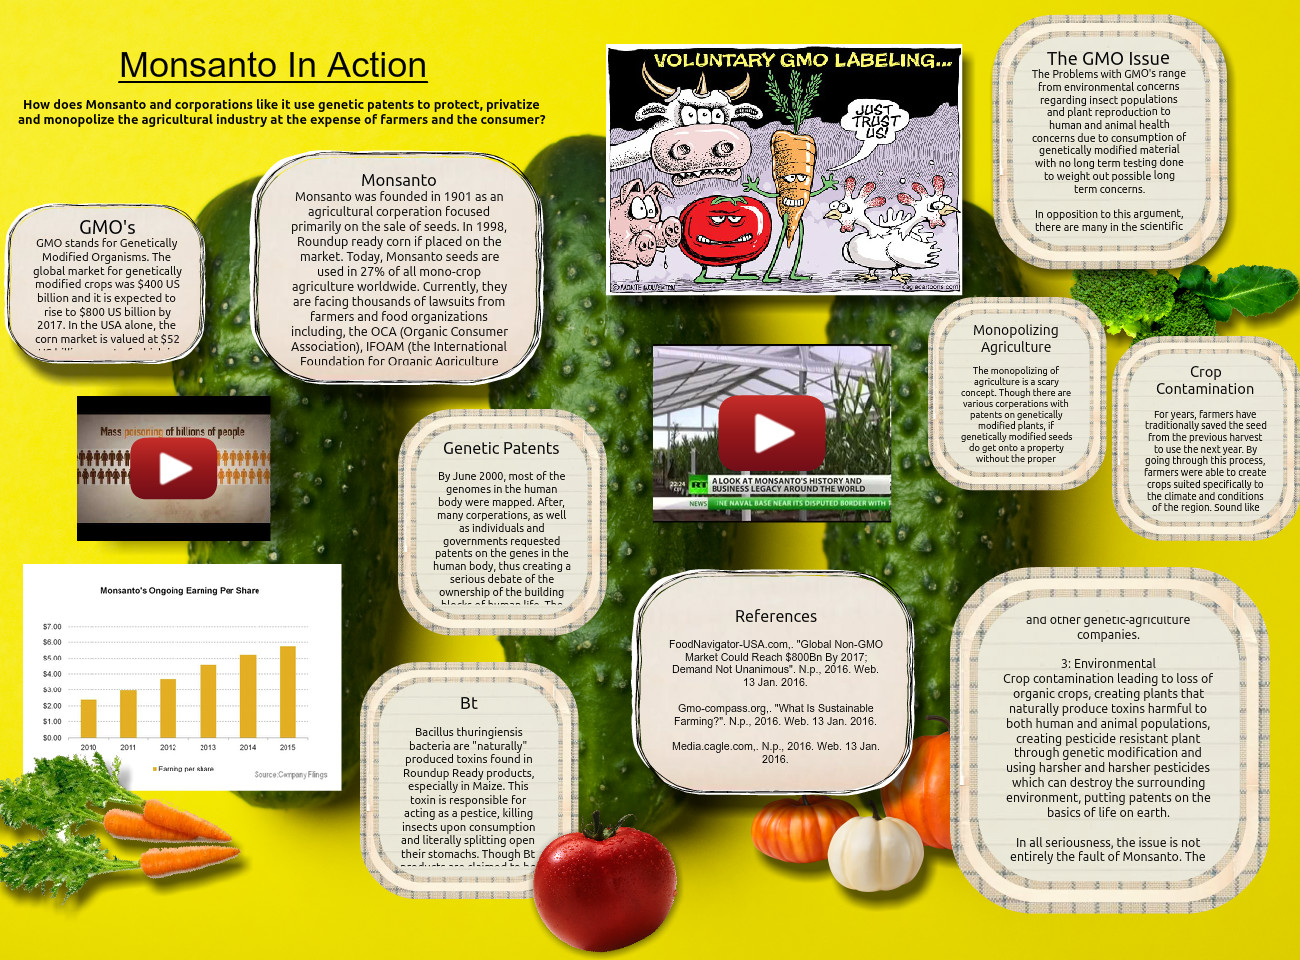 Monsanto in Action